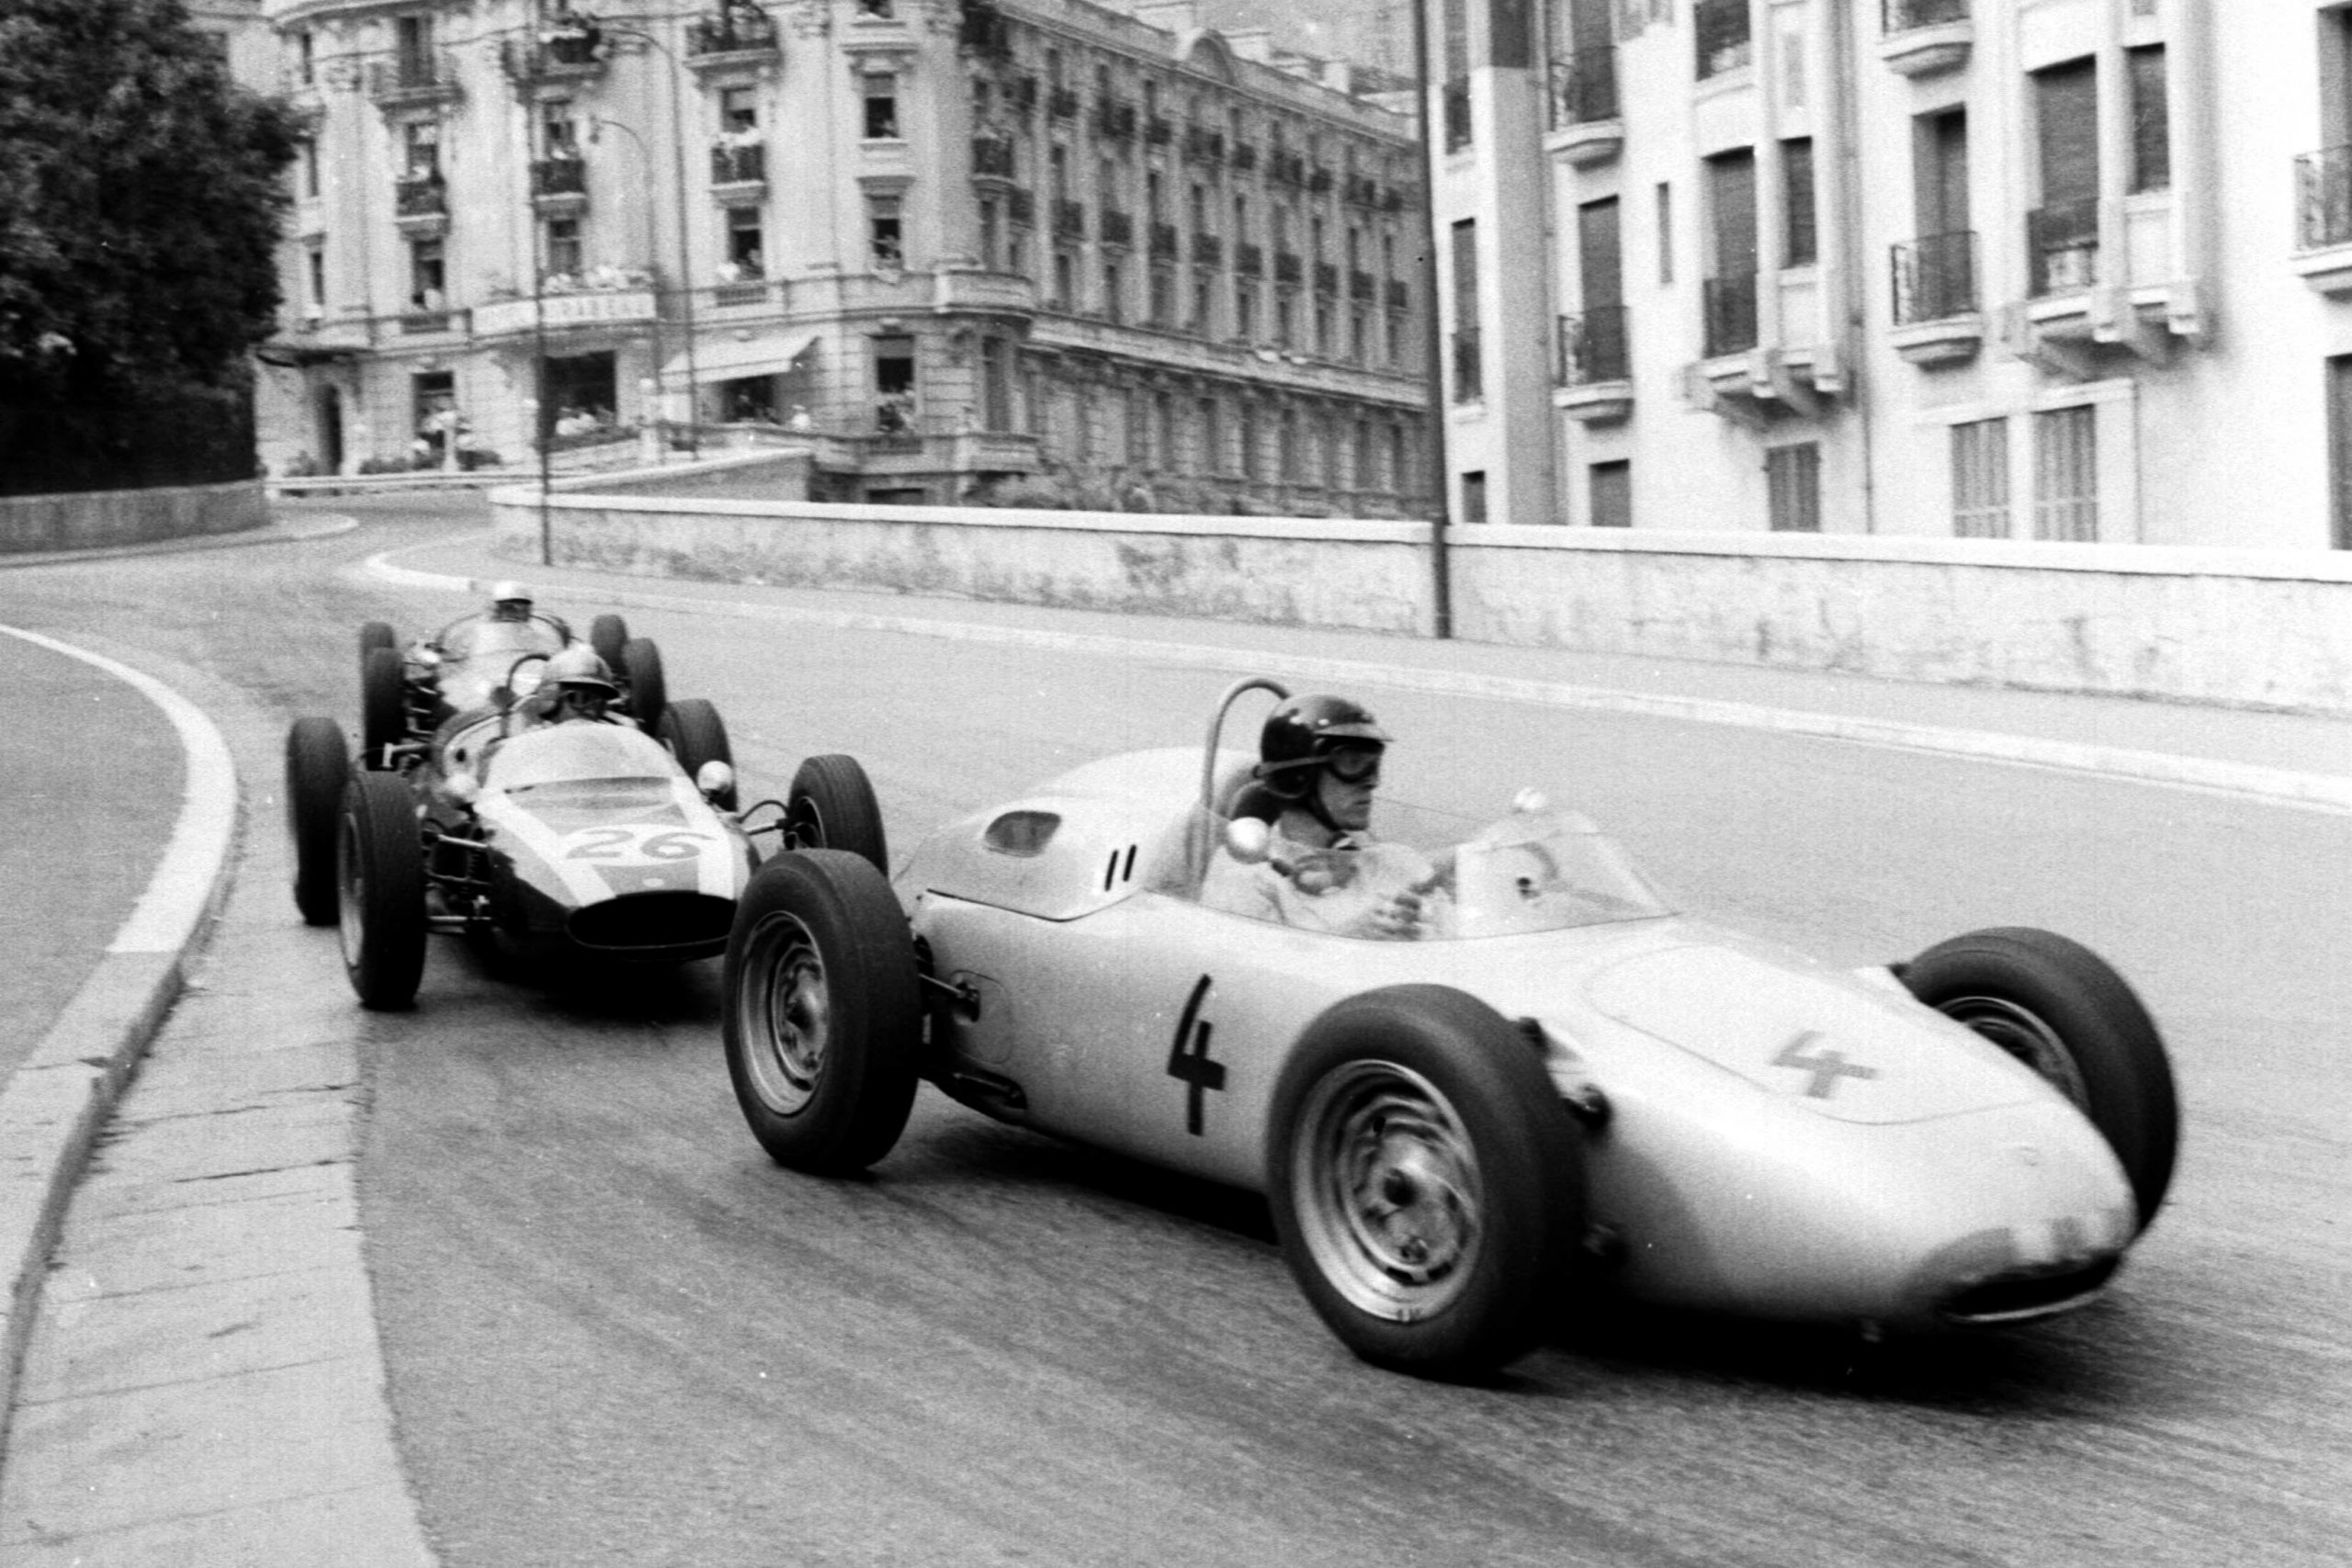 Dan Gurney in a Porsche 718 holds off Bruce McLaren in a Cooper T55 Climax into Station Hairpin.